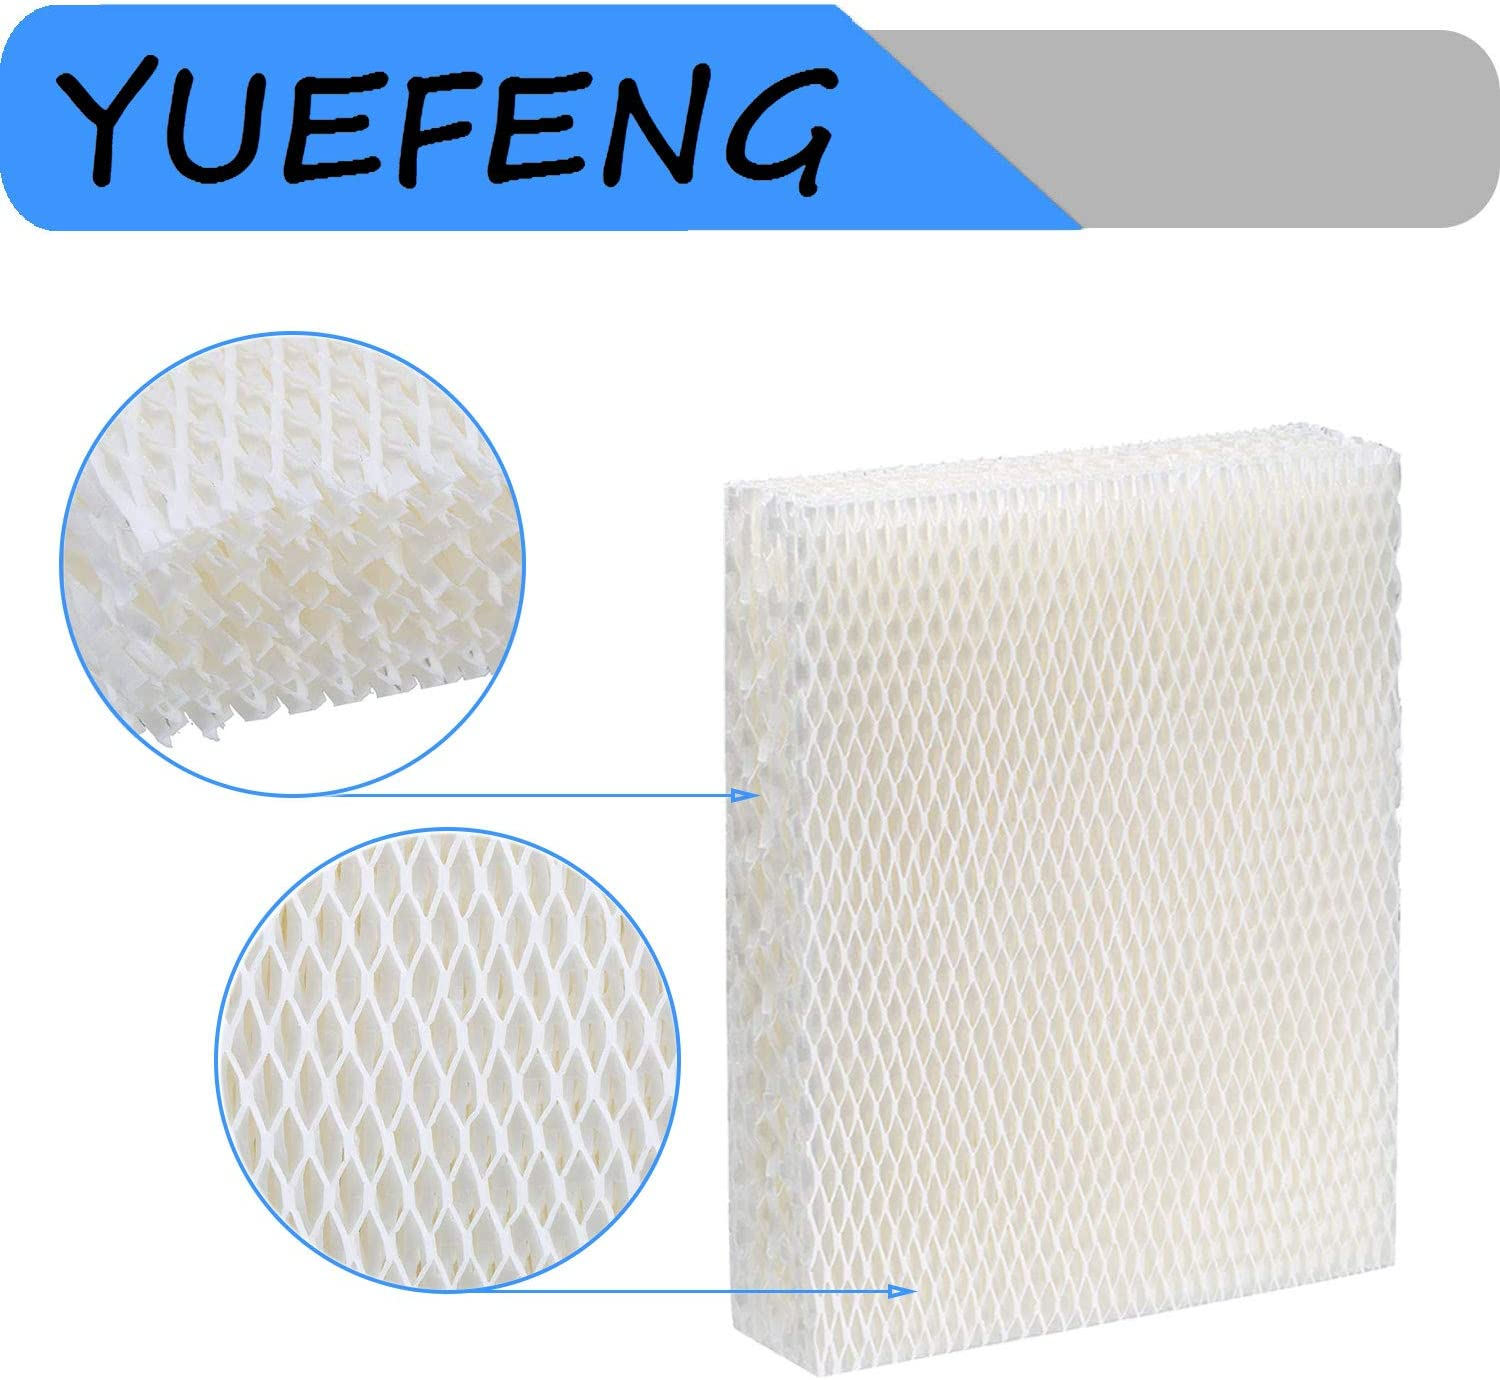 YUEFENG 4 Pack Humidifier Replacement Filter T for Honeywell Top Fill Humidifier HEV615 and HEV620 Humidifier Wicks Compatible with Part # HFT600 HFT600PDQ HFT600T